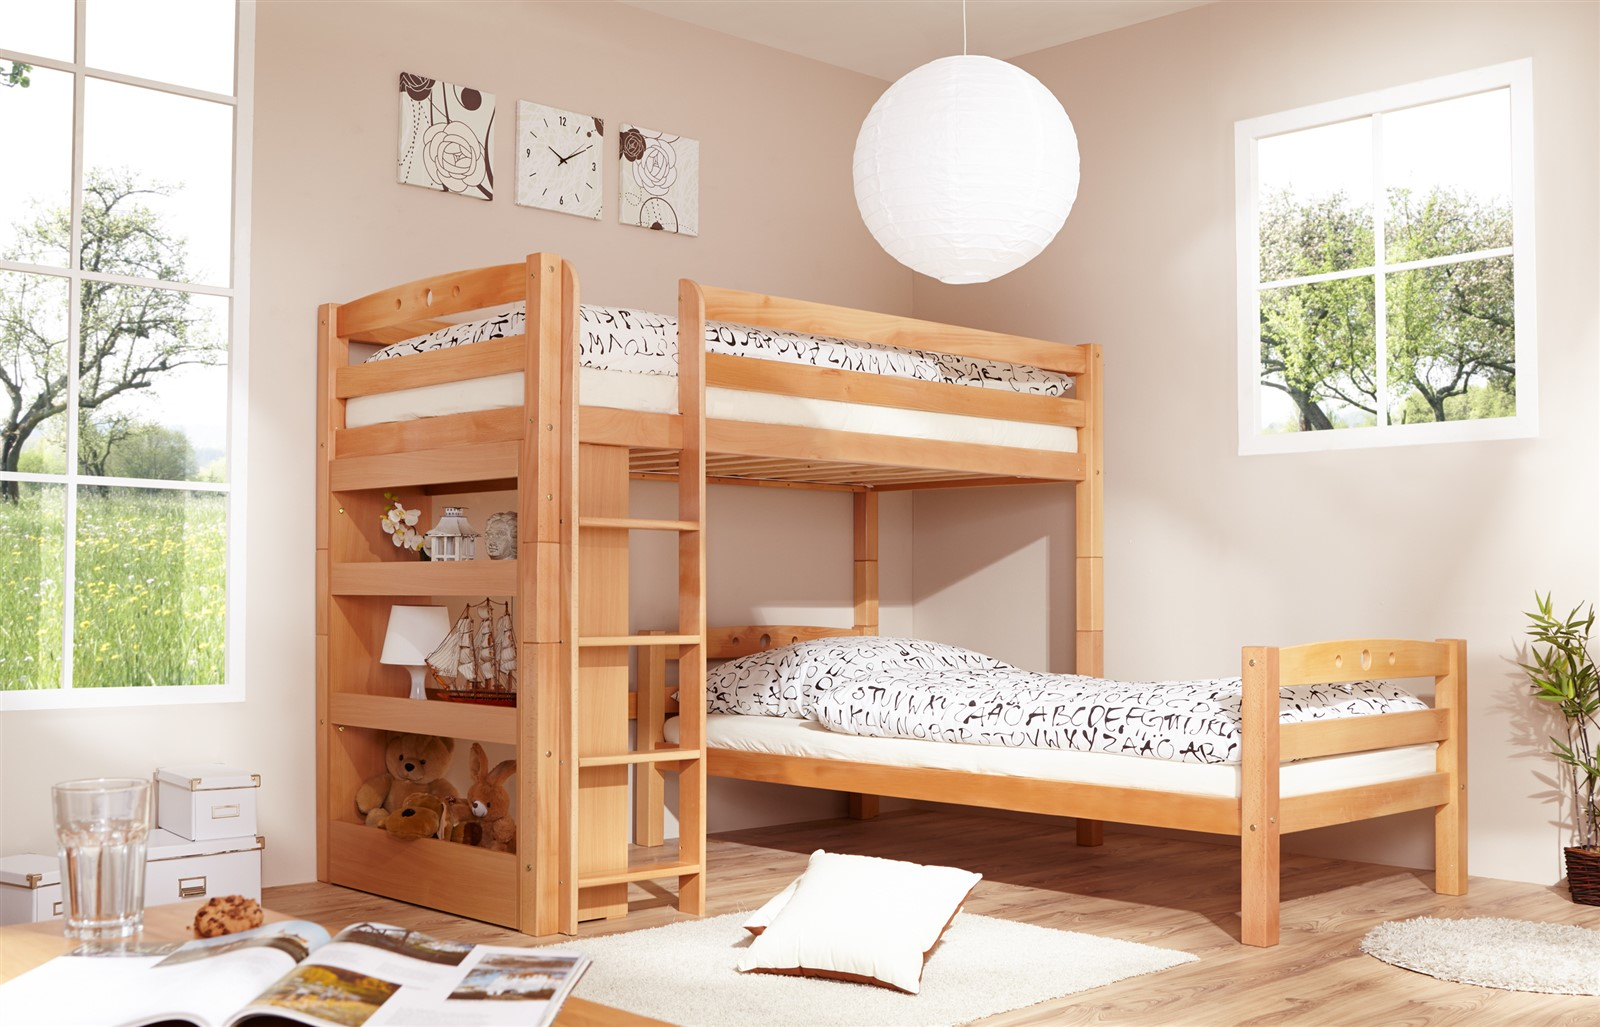 hochbett etagenbett spielbett oli buche massiv. Black Bedroom Furniture Sets. Home Design Ideas